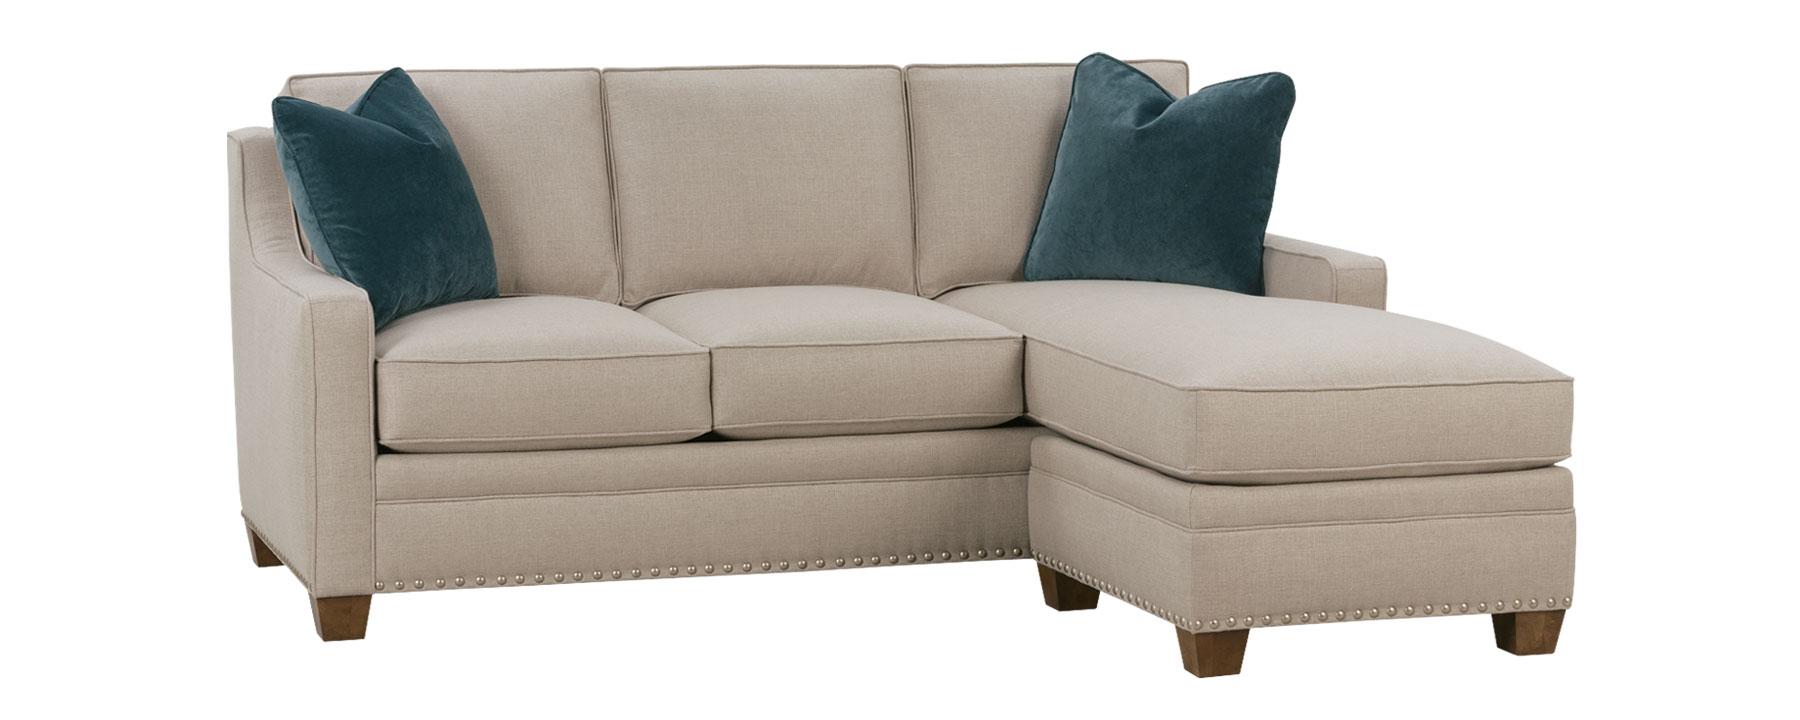 Addison designer style apartment size reversible chaise sectional sectionals - Apartment size living room furniture ...